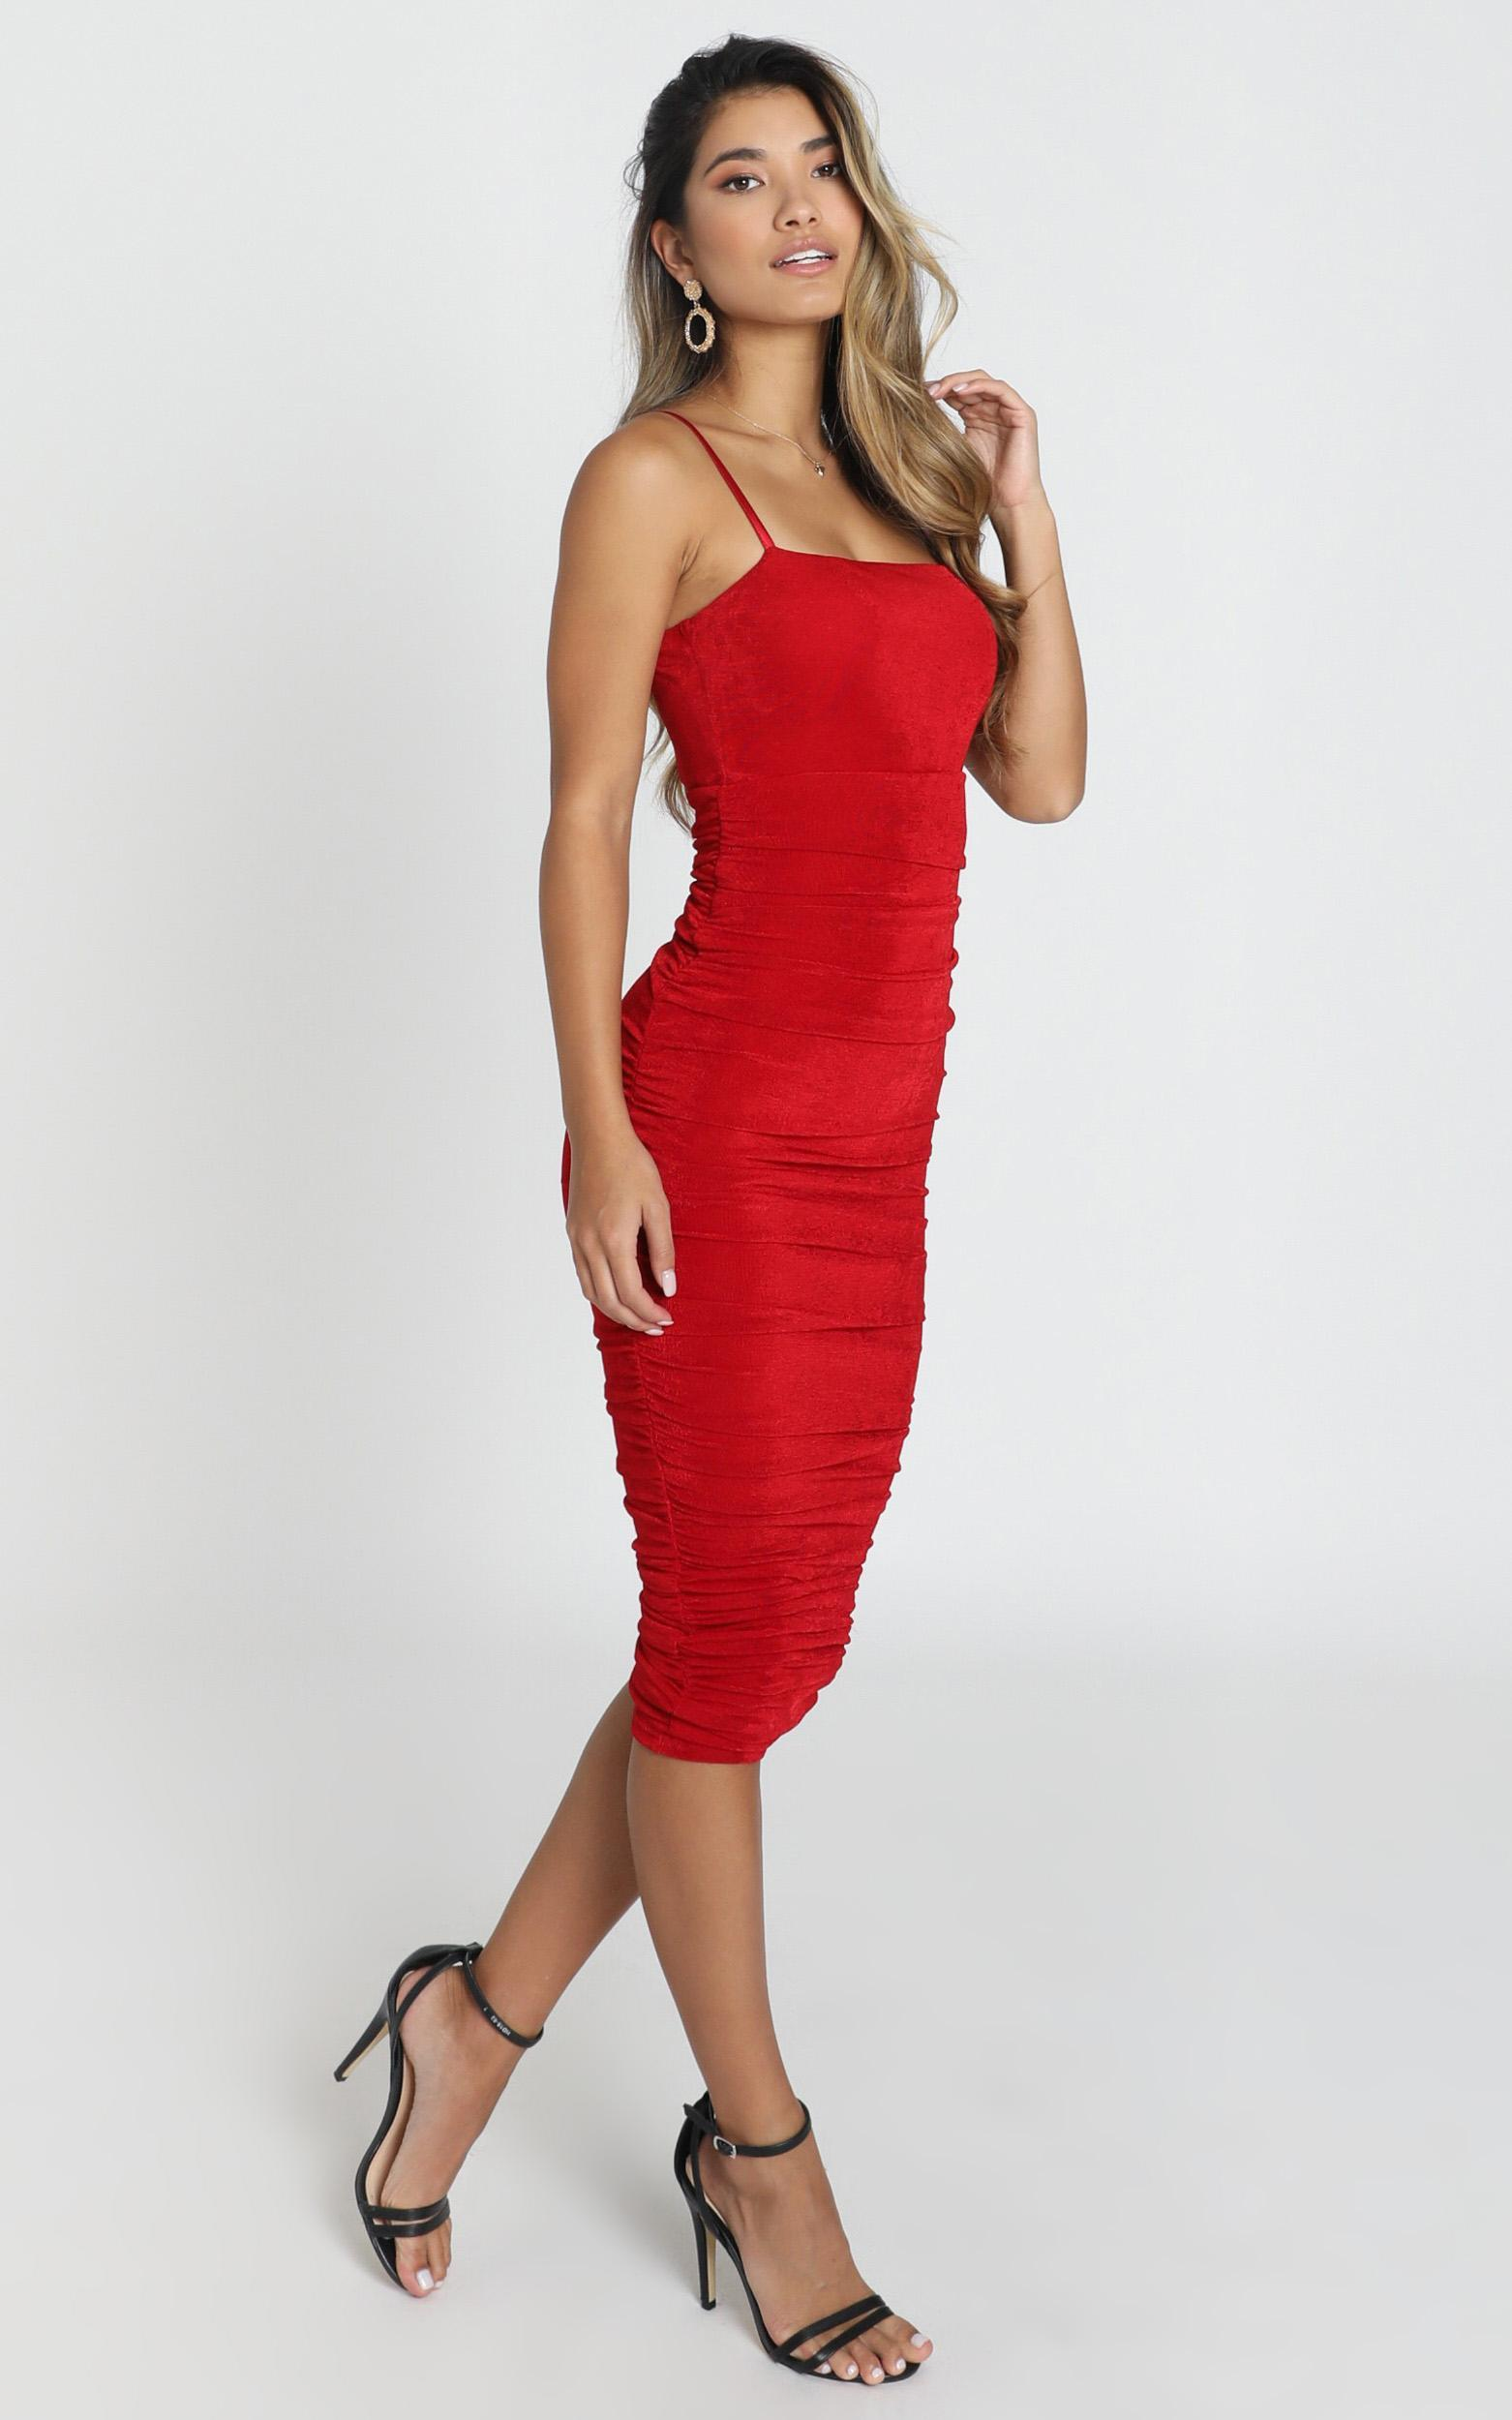 Commit To Me Maxi Dress in red - 20 (XXXXL), Red, hi-res image number null